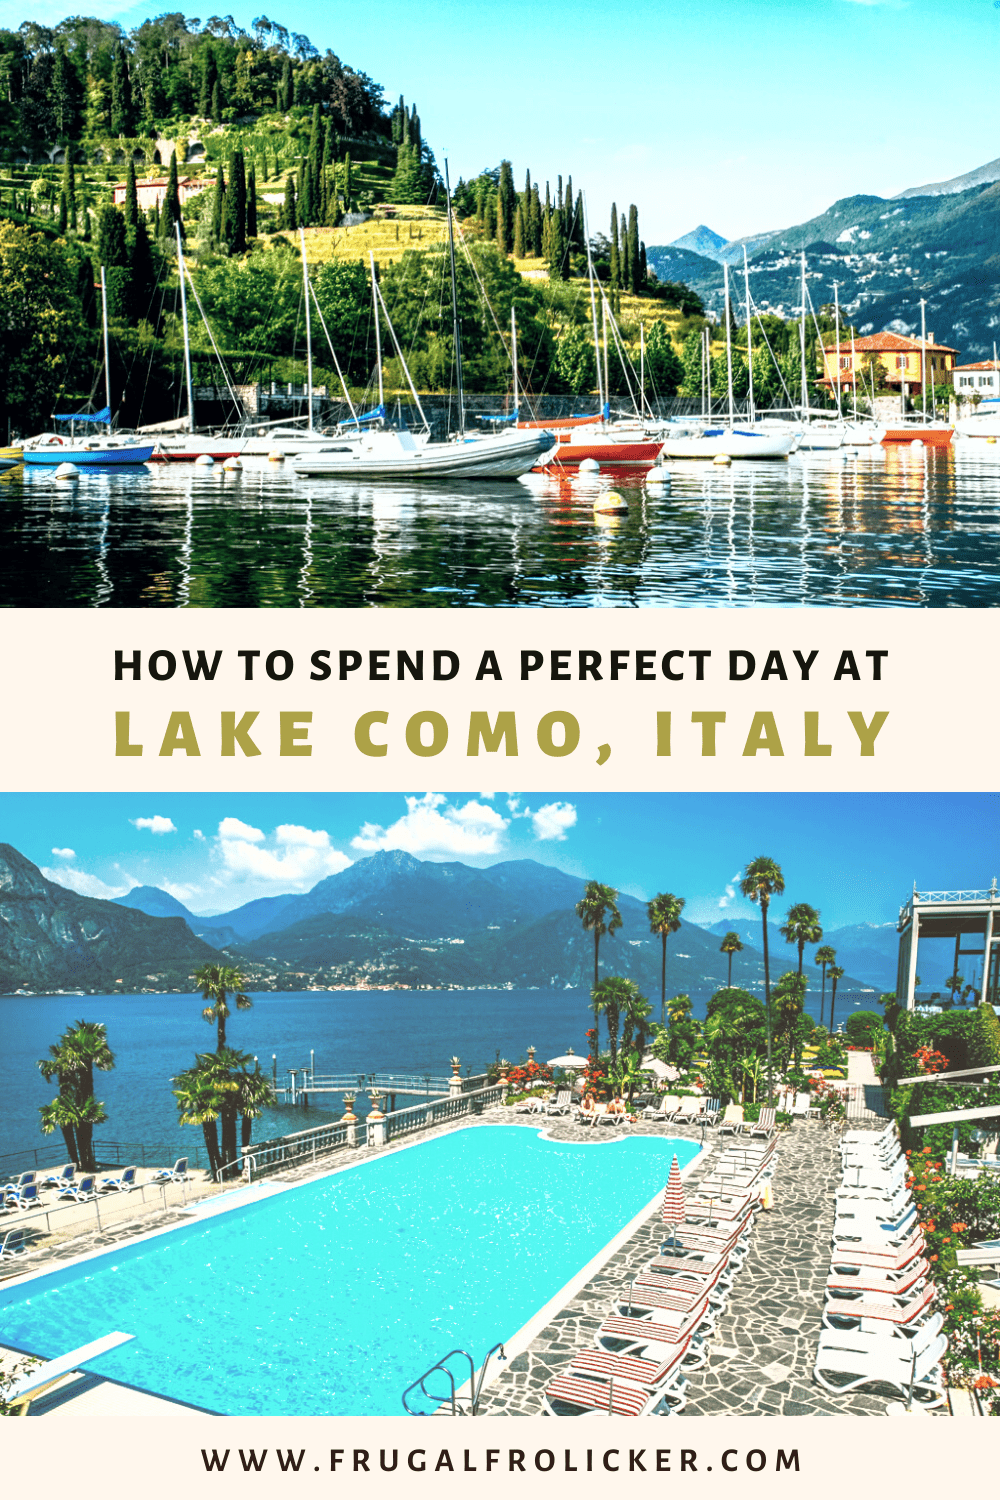 One Day in Lake Como, Italy